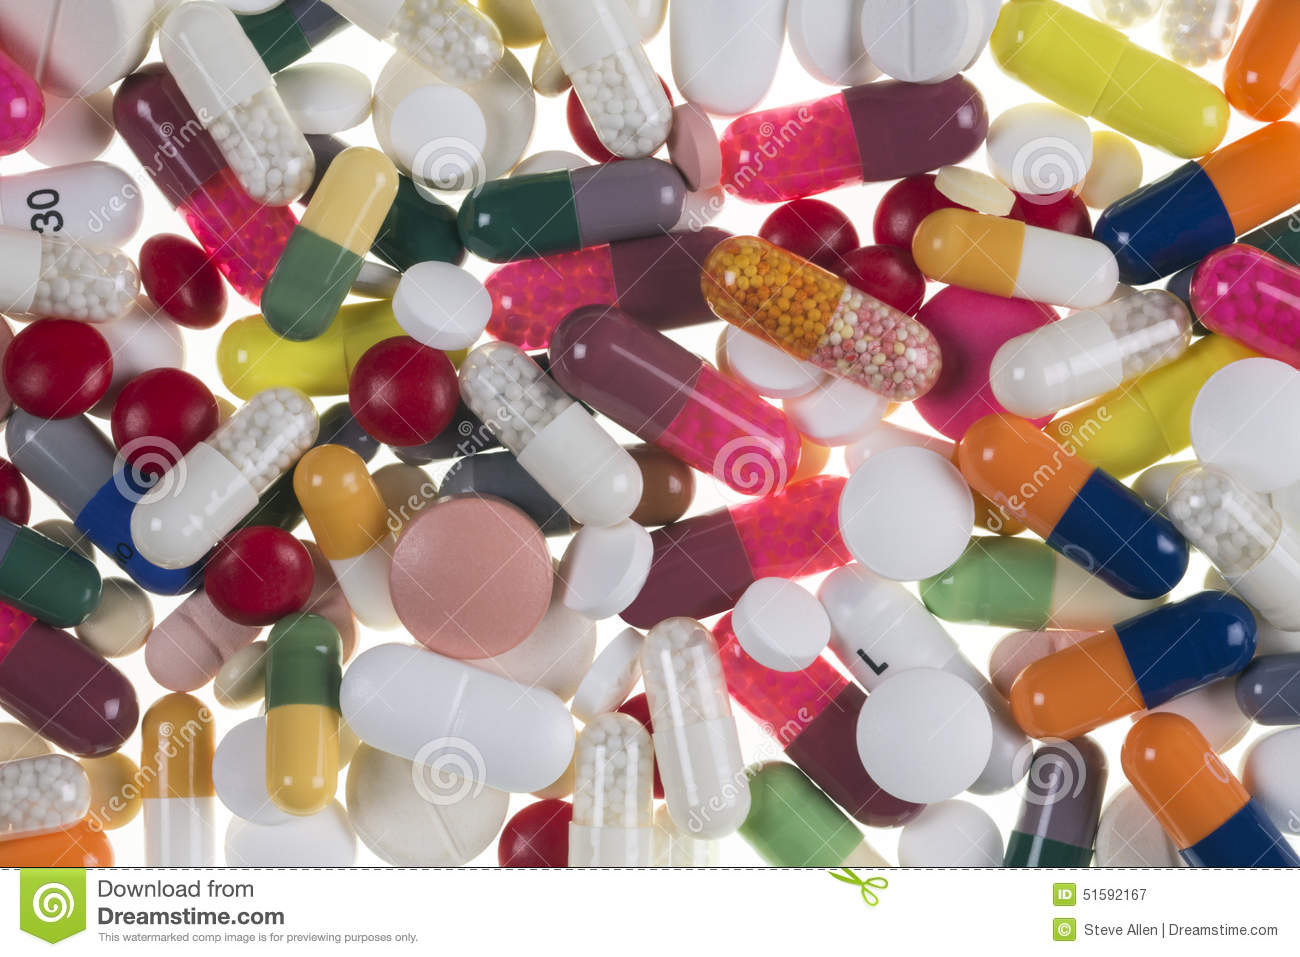 what medicine is used to treat vre